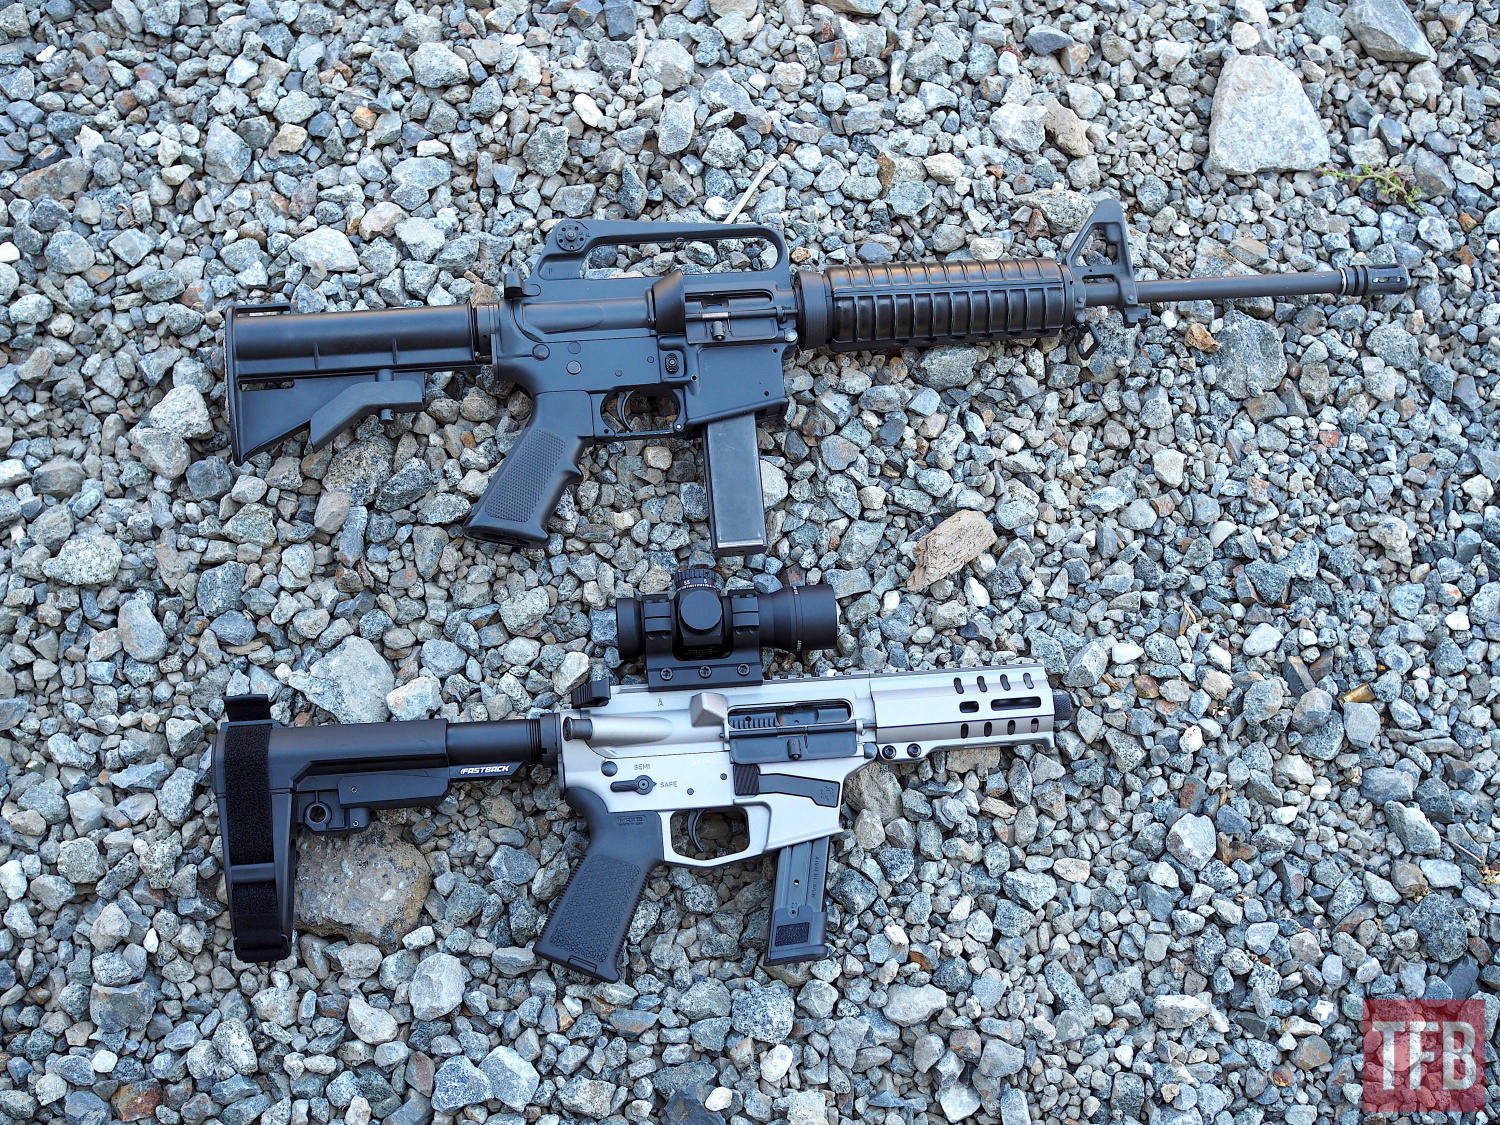 PCCs then and now Top: Colt R6450 Bottom: CMMG Mk17